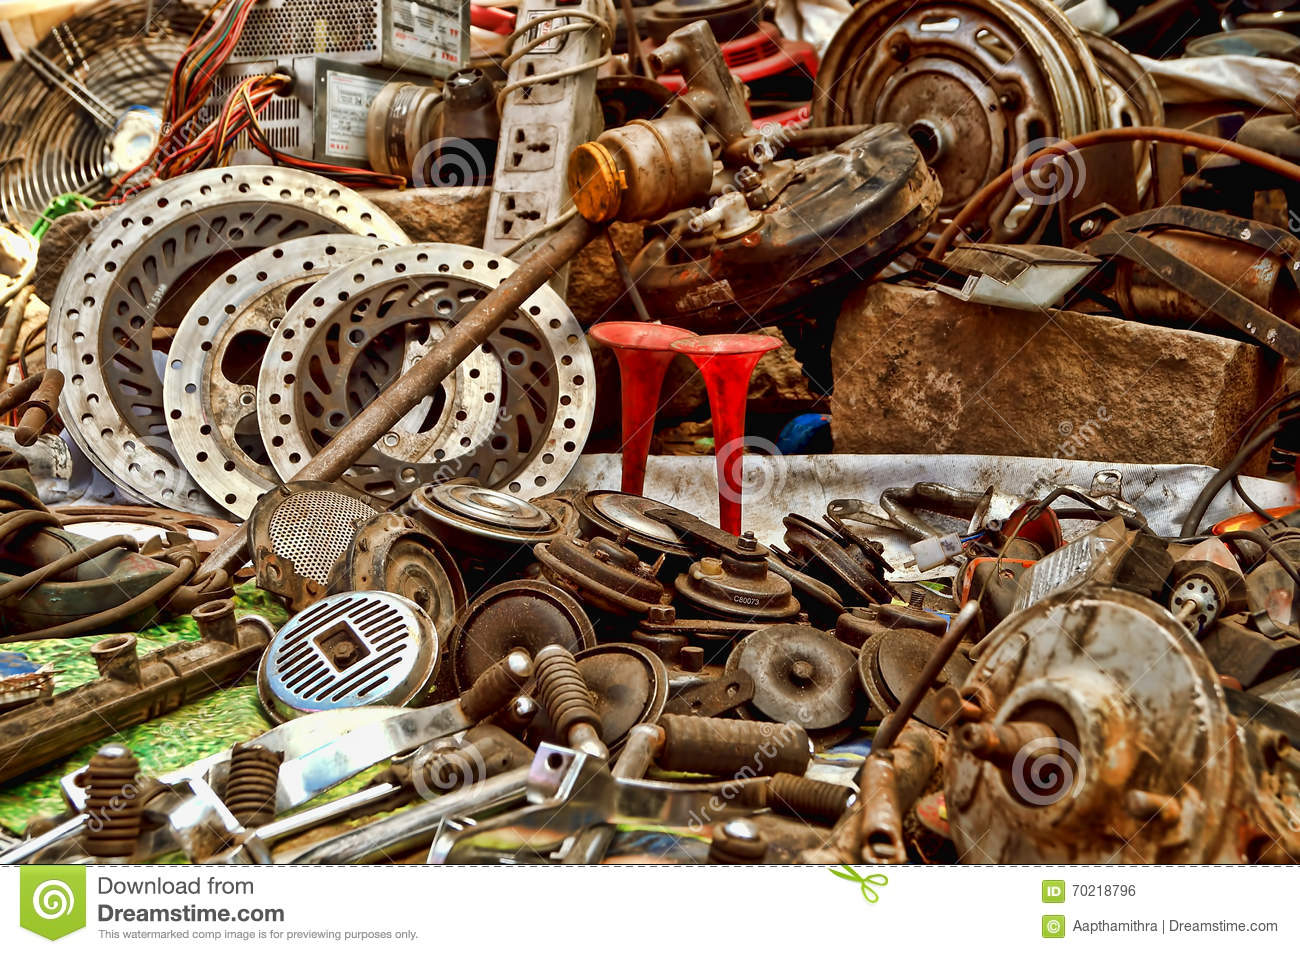 Second Hand Pistons And Gears Stock Photo - Image: 70218796